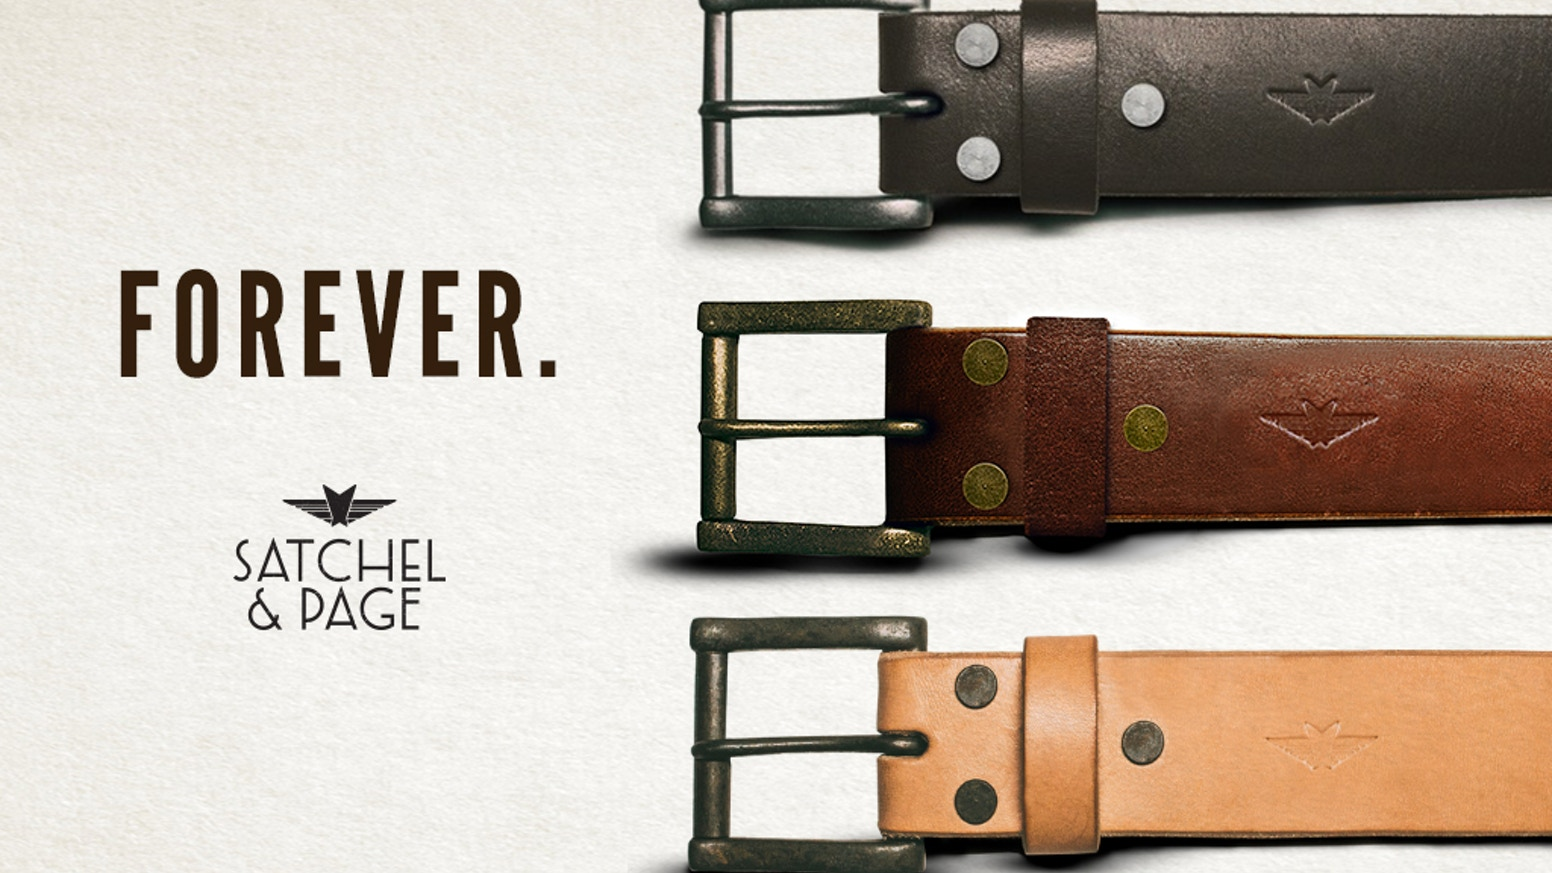 A belt built to last forever. Leather, hardware, and width options for any occasion. Exceptional quality at every step of the process.